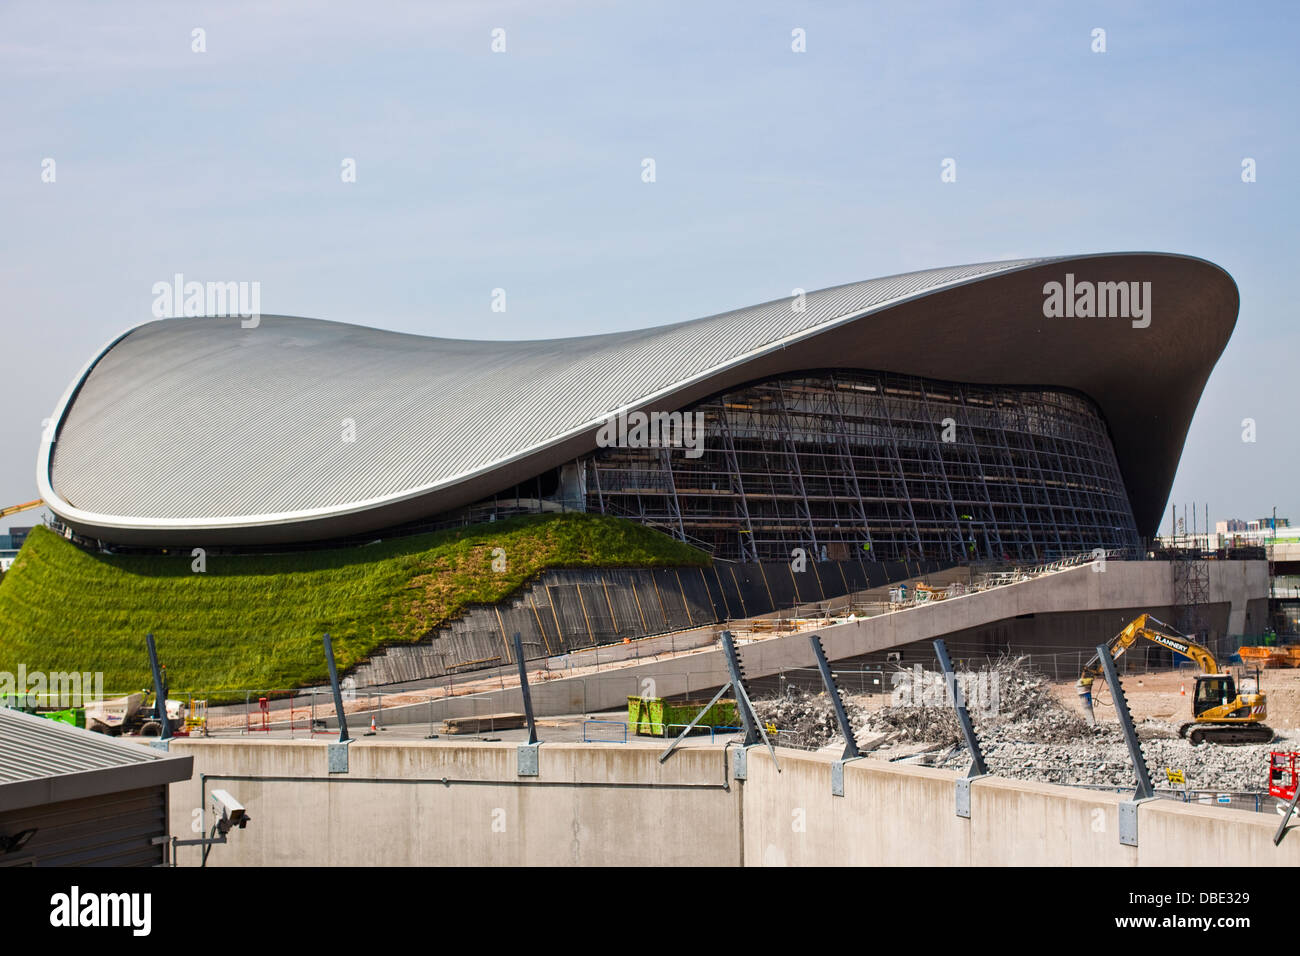 olympic swimming pool without temporary seating sections stratford stock photo royalty free